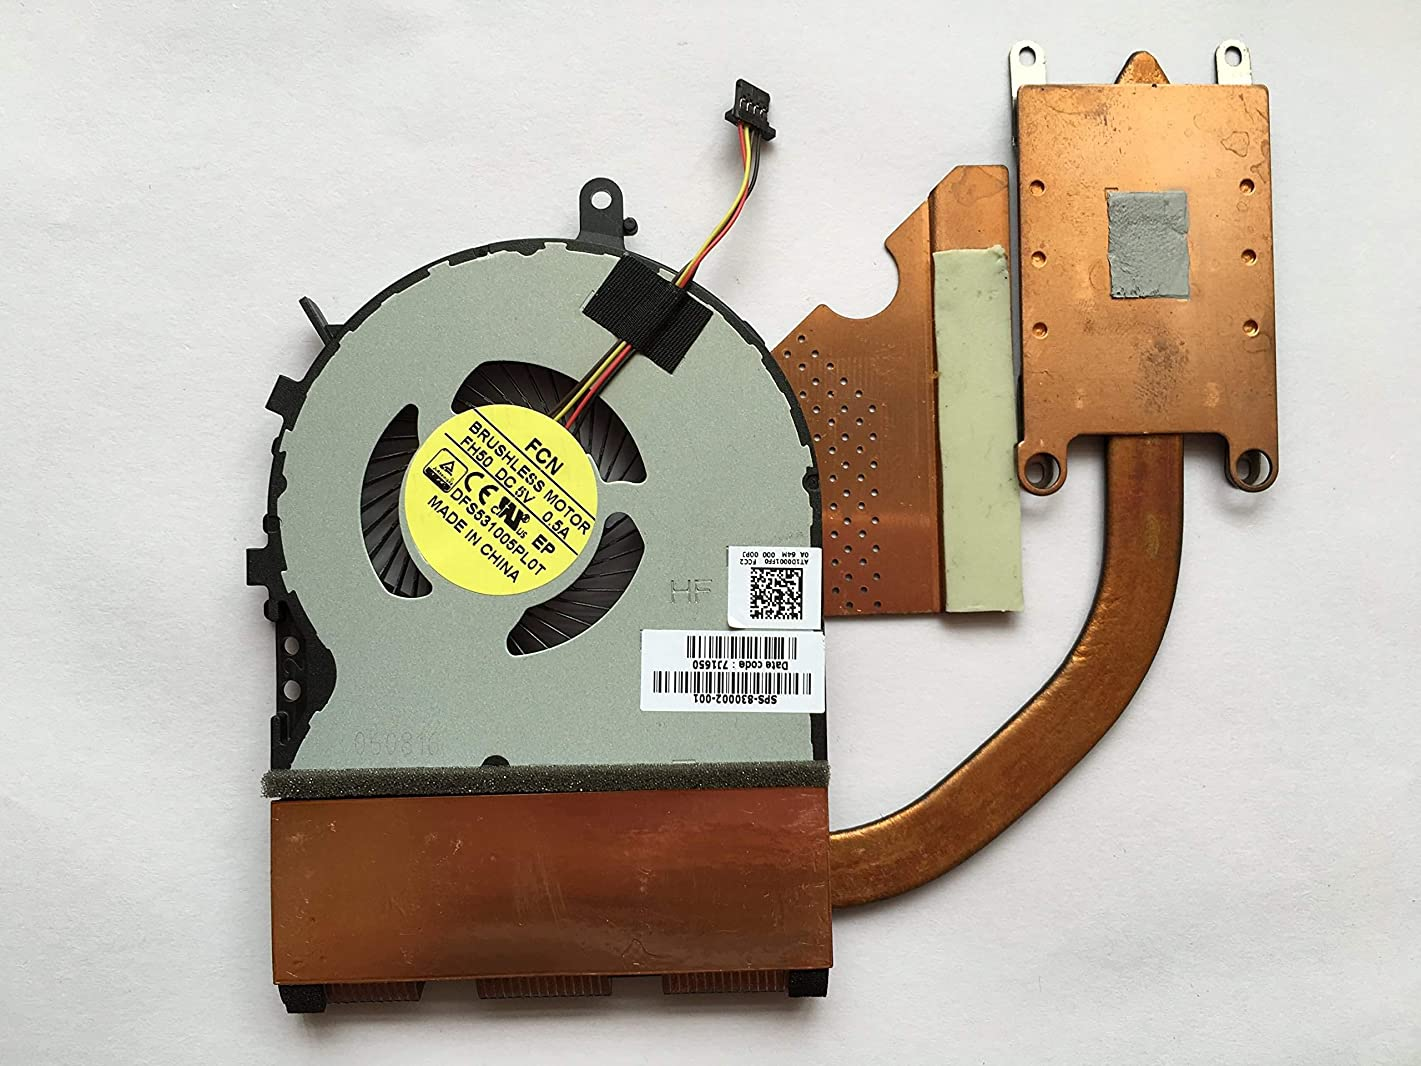 wangpeng Replacement Fan for HP Envy 15T-AE 15T-AE100 Series CPU Cooling Fan with Heatsink 4-Pin 4-Wire SPS 830002-001